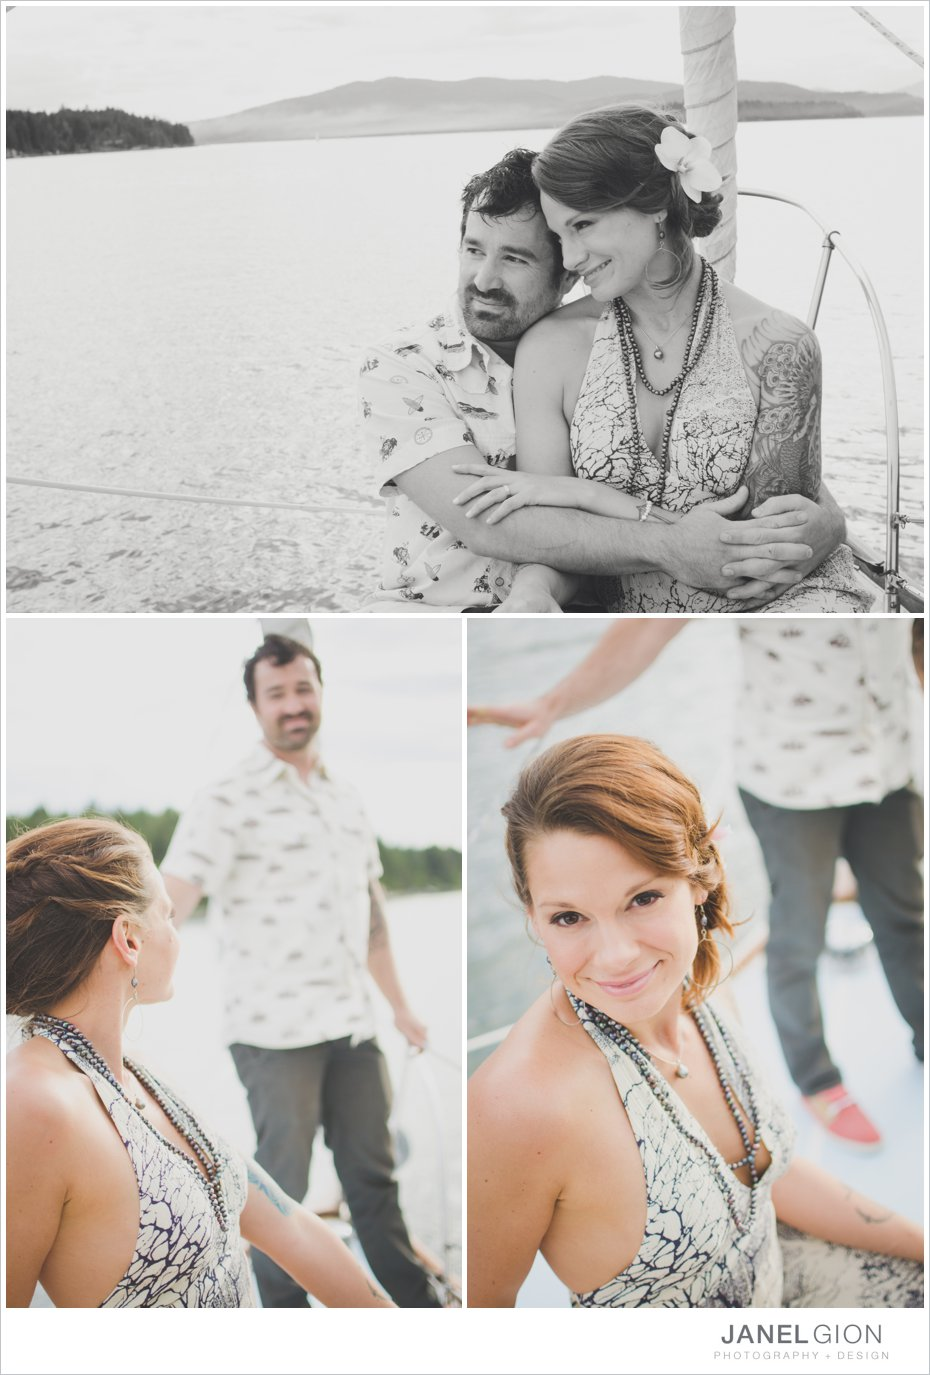 Janel-Gion-sailboat-beach-bikes-engagement-photos_0011.jpg